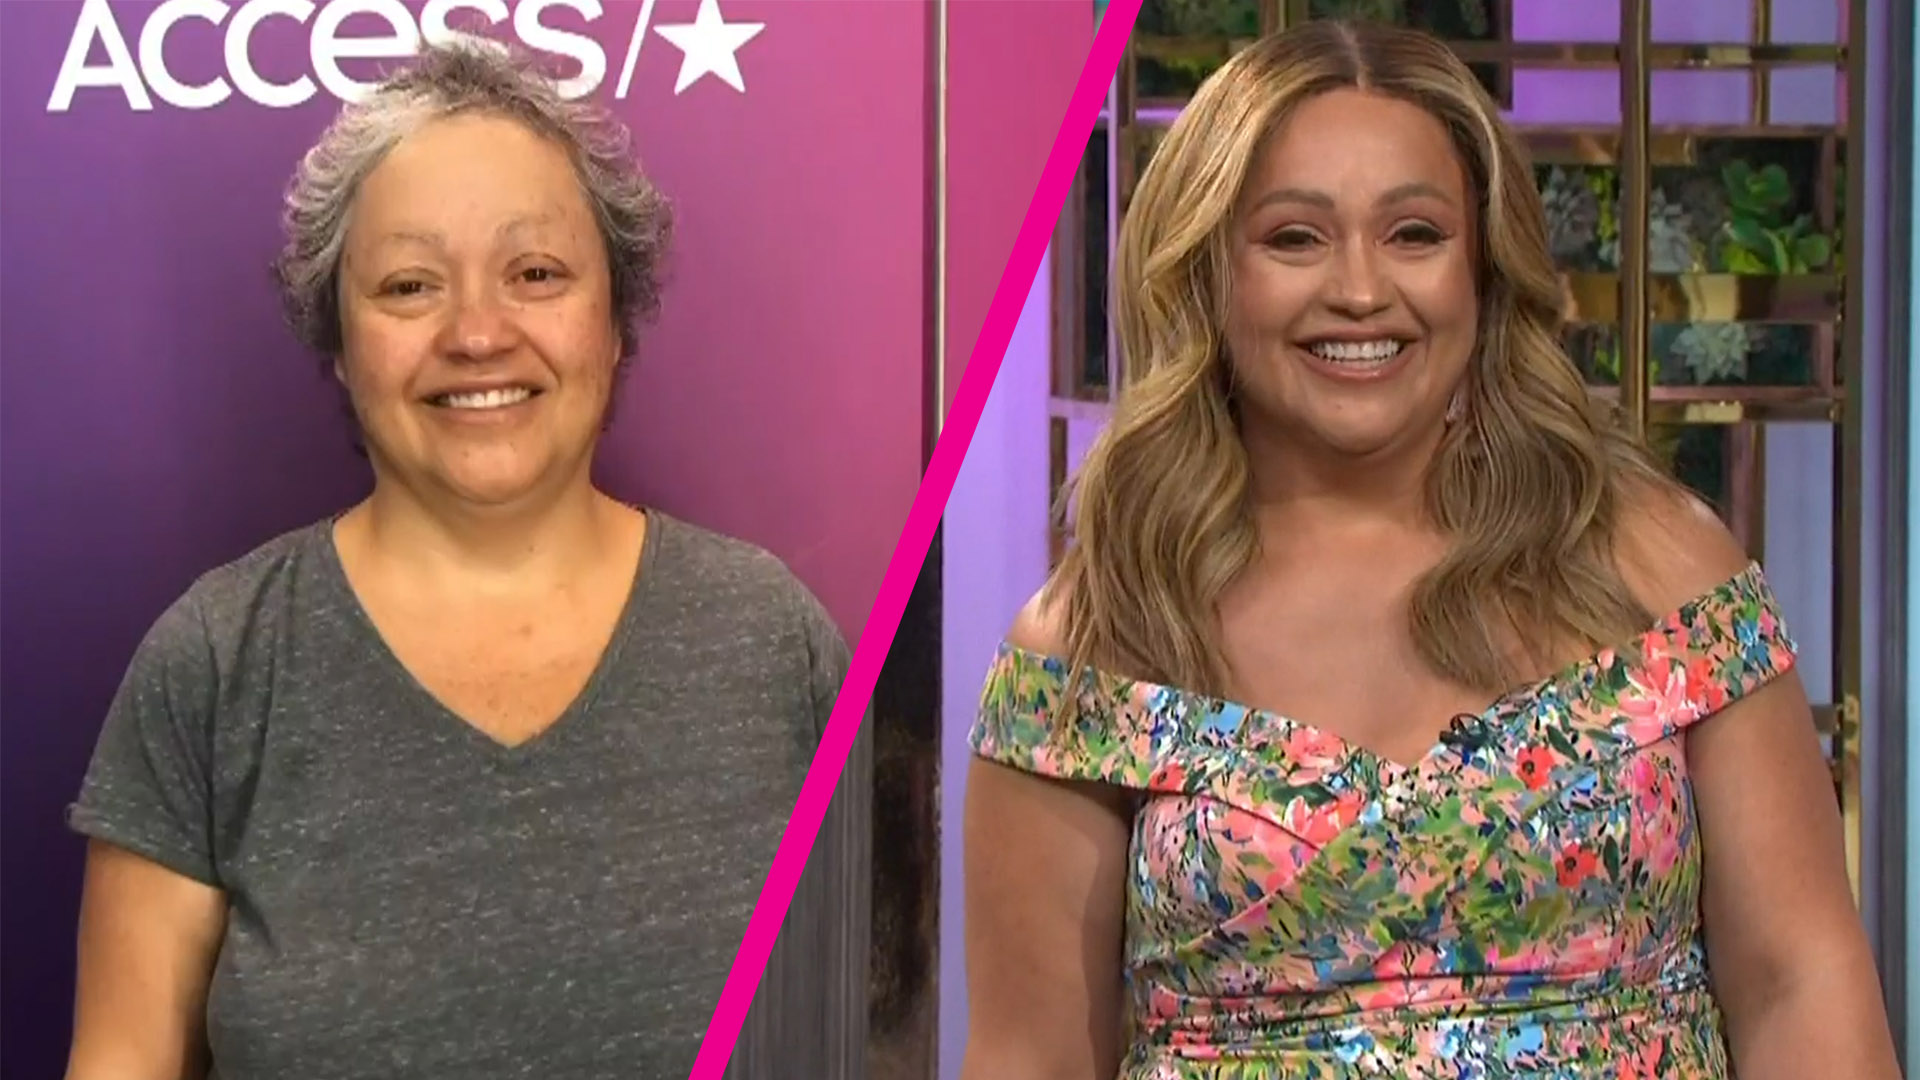 50 Year Old Woman With Breast Cancer Looks Unrecognizable